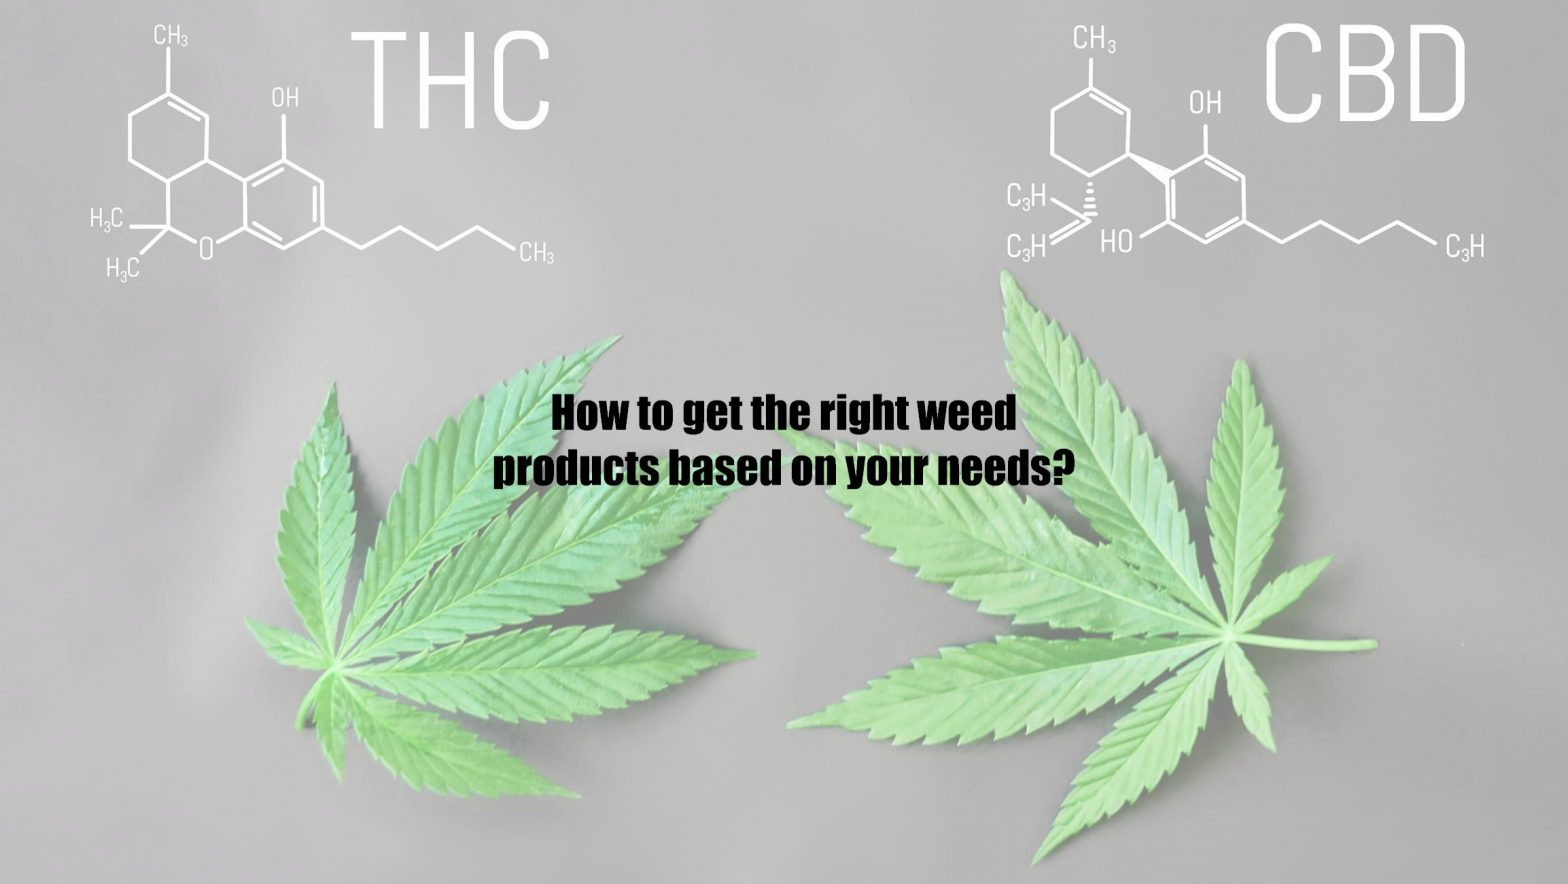 How to get the right weed products based on your needs?